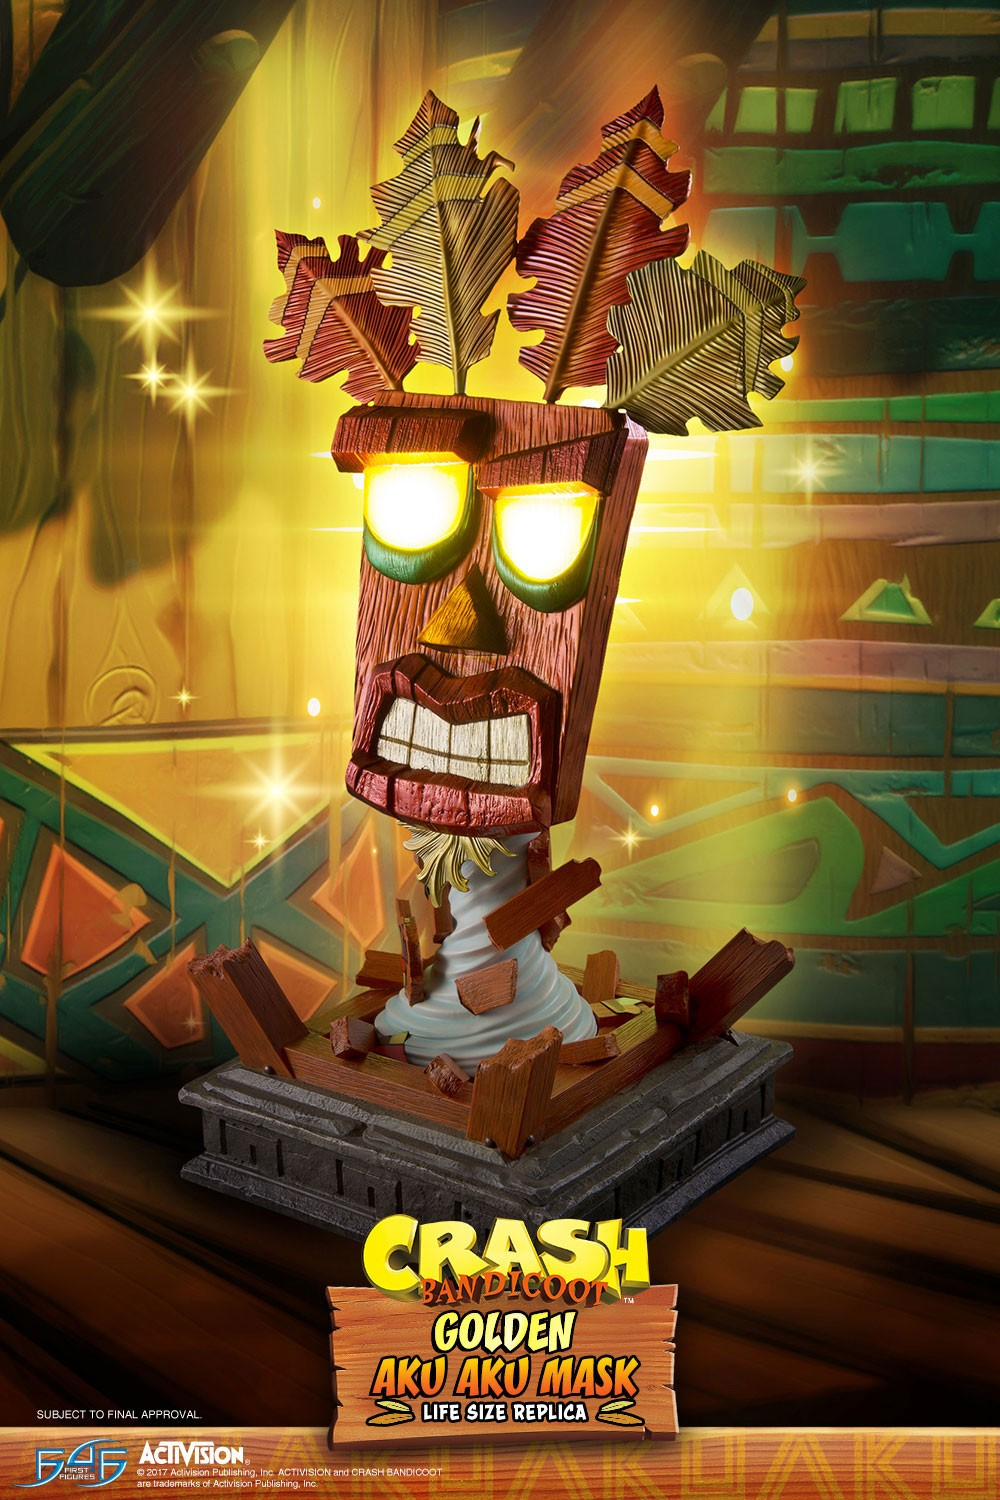 Golden Aku Aku Mask